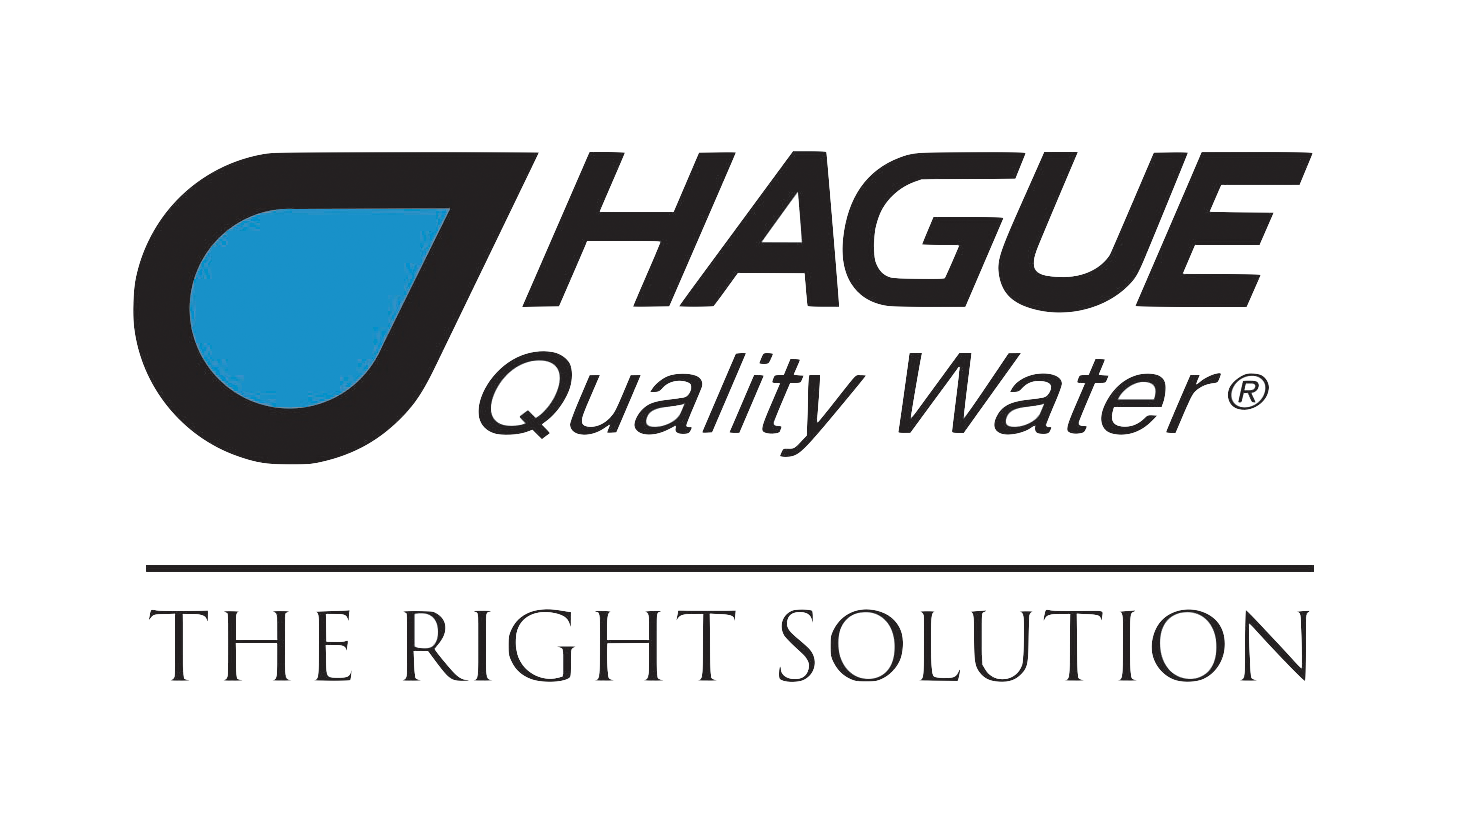 hague logo- the right solution.png